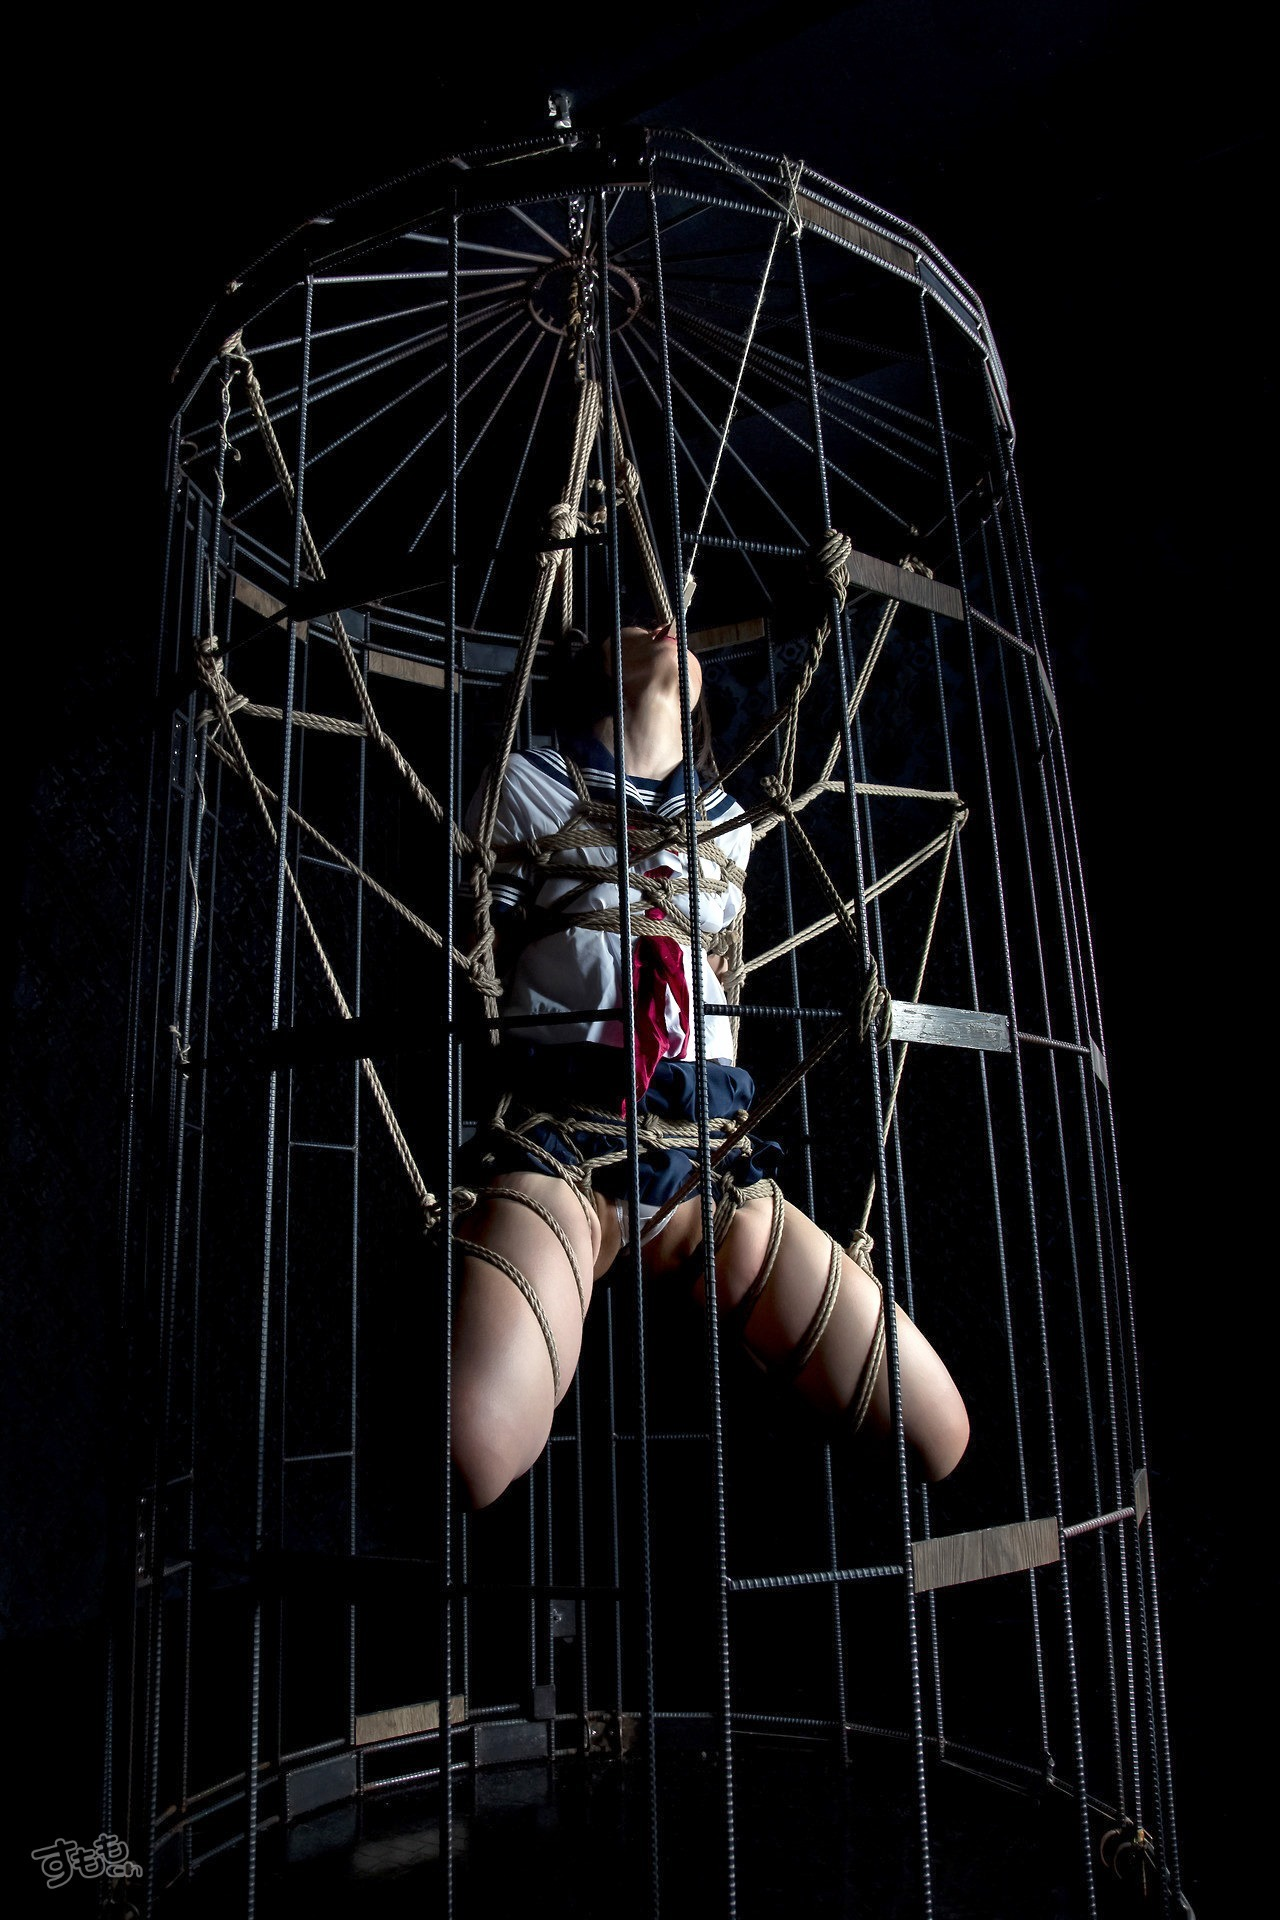 cage_5916-019